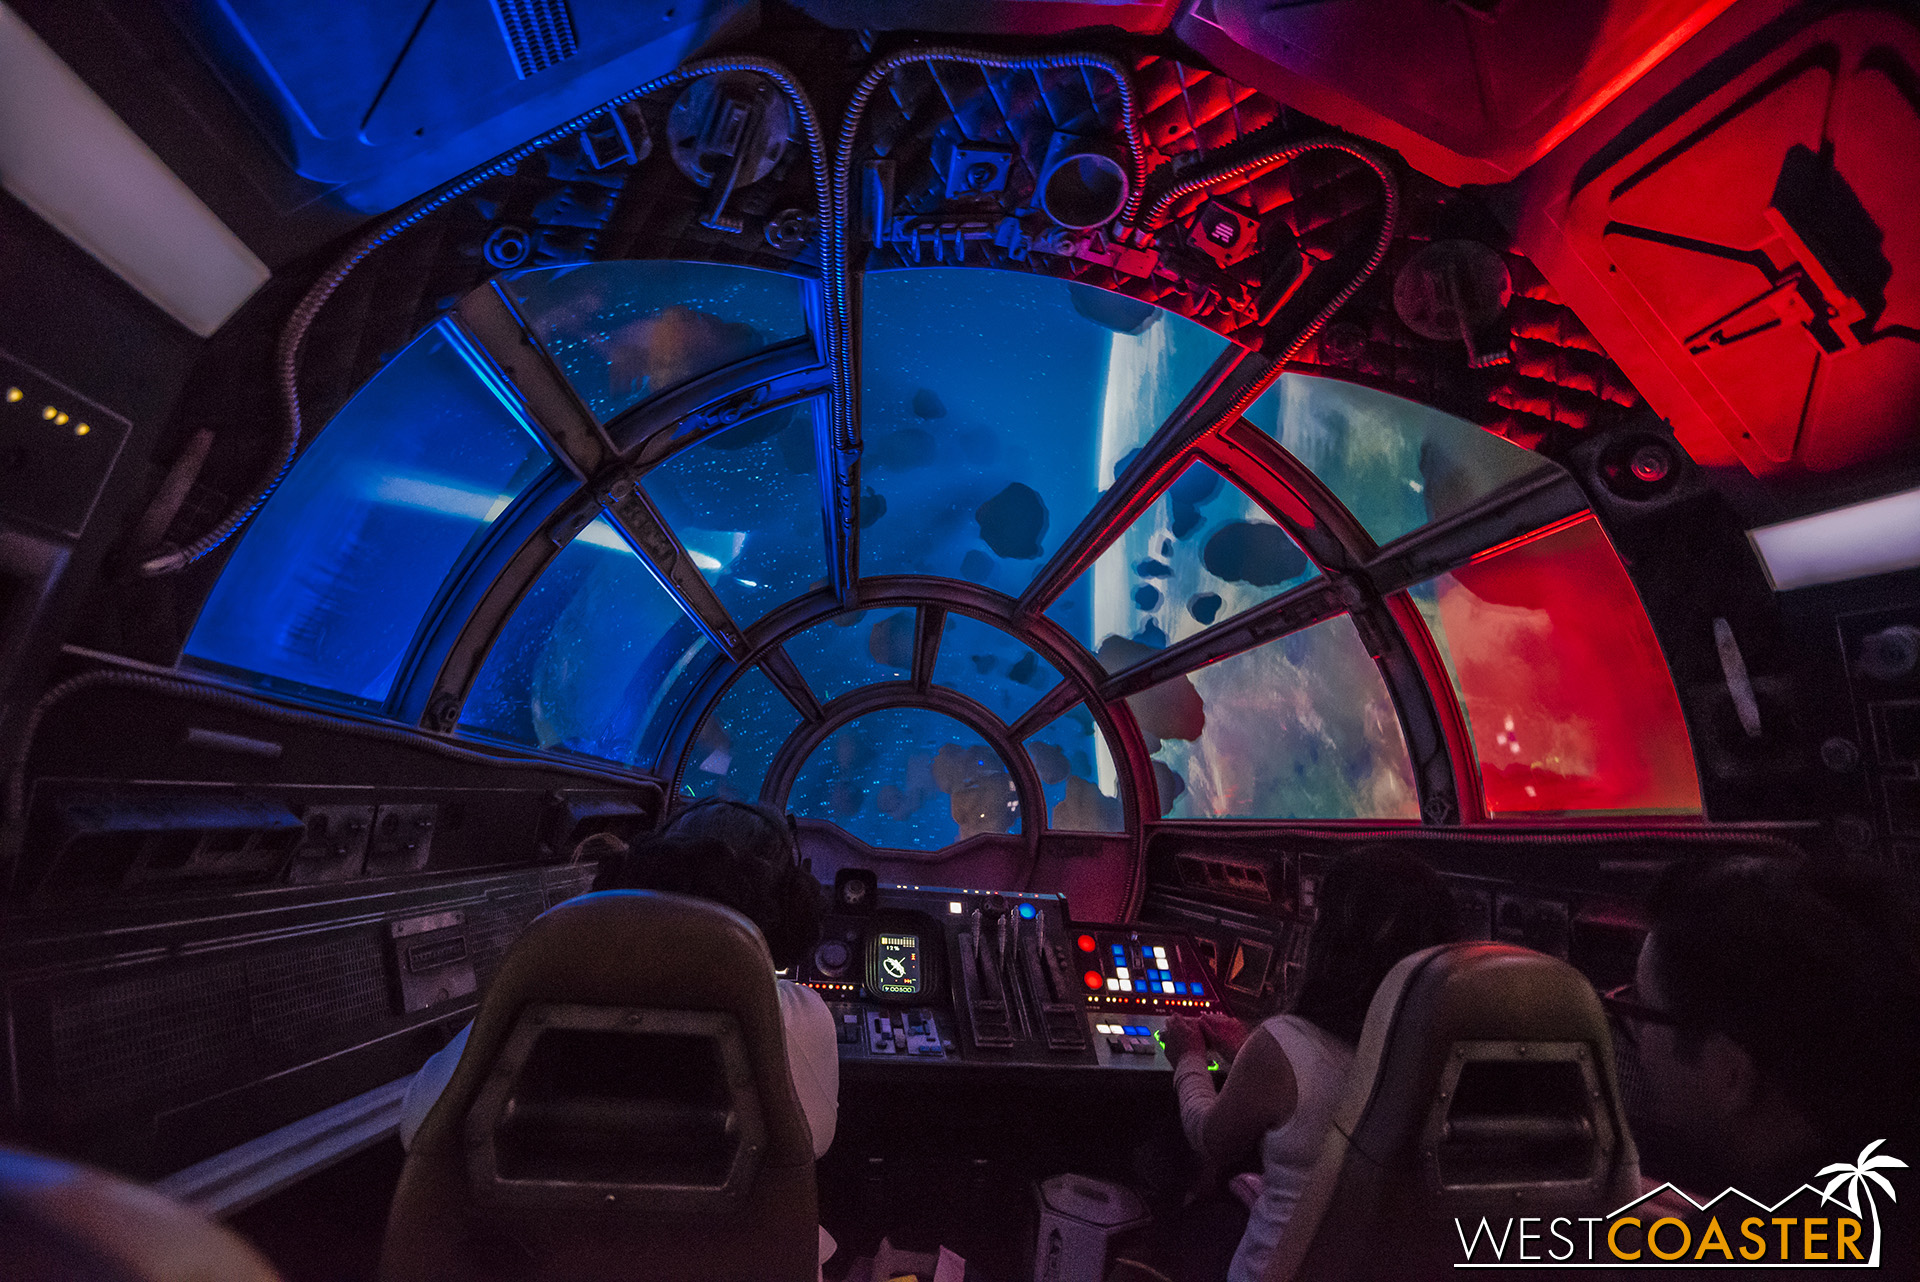 Millennium Falcon: Smuggler's Run represents a pinnacle in combining interactive gaming elements with physical ride elements.